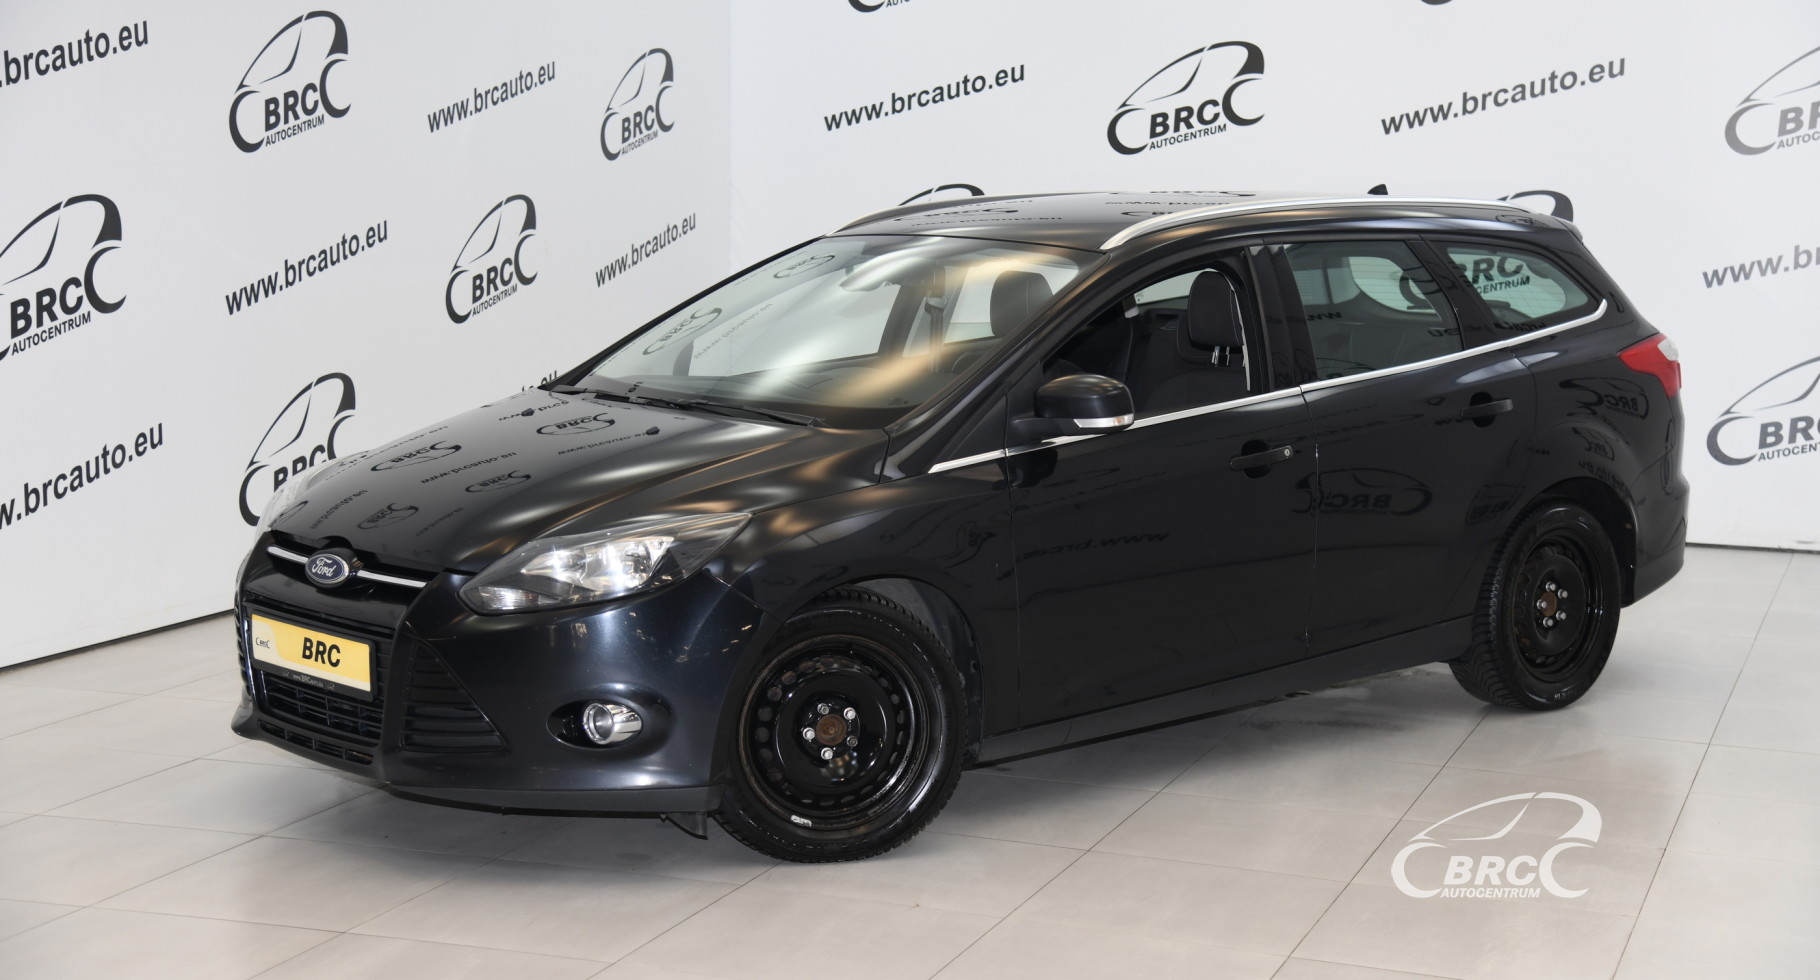 Ford Focus Turnier 2.0 TDCi Automatas